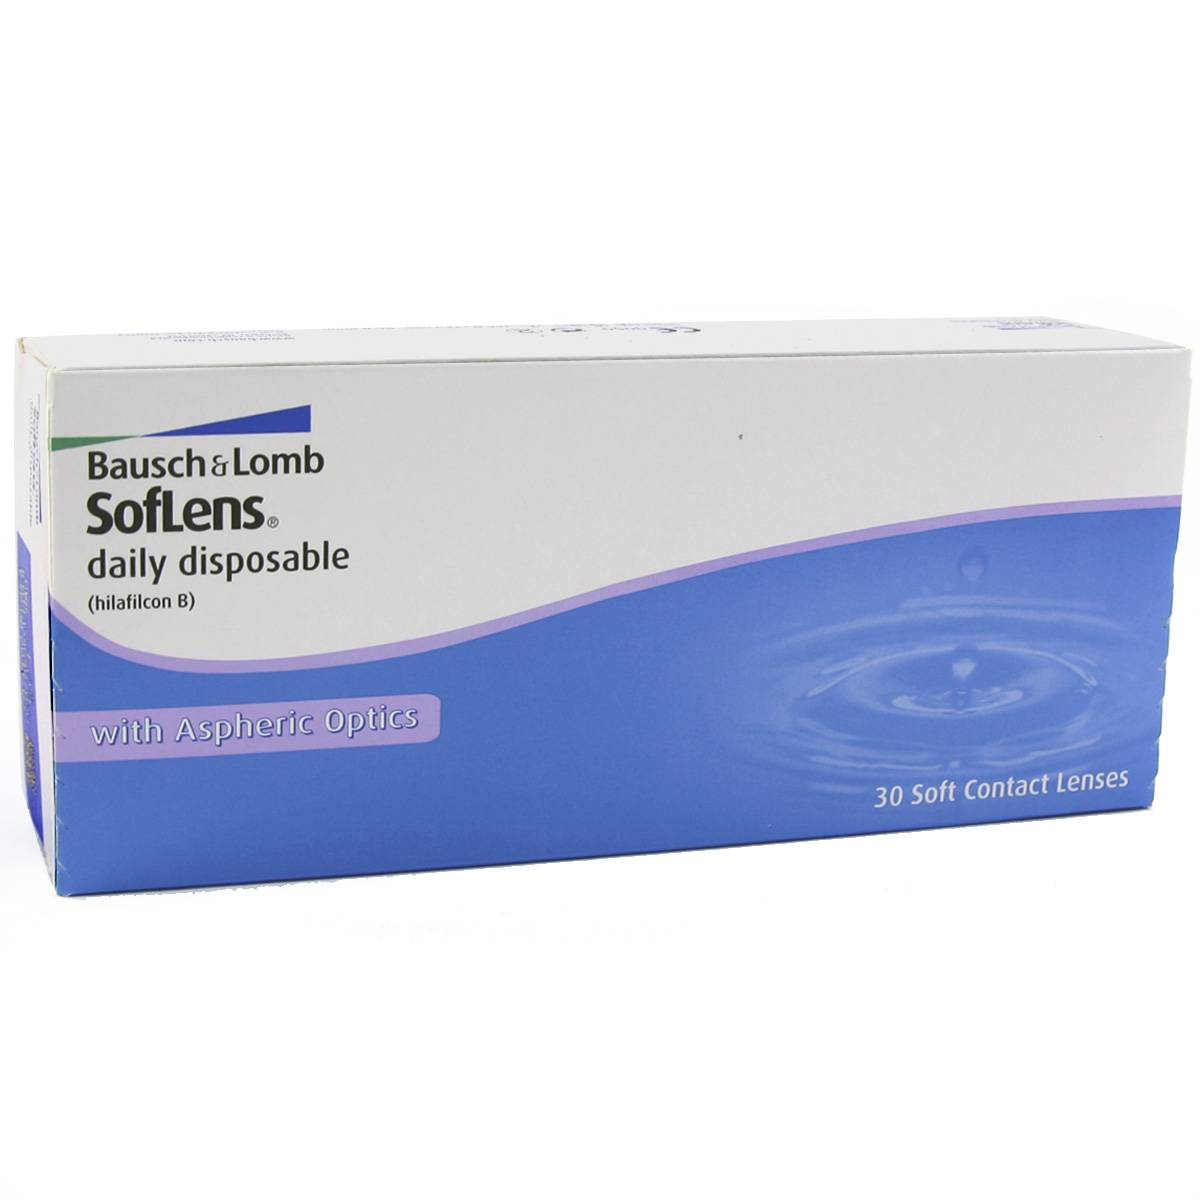 Bausch & Lomb Soflens Daily Disposable (30 Contact Lenses), Bausch & Lomb Daily Disposables, Hilafilcon B